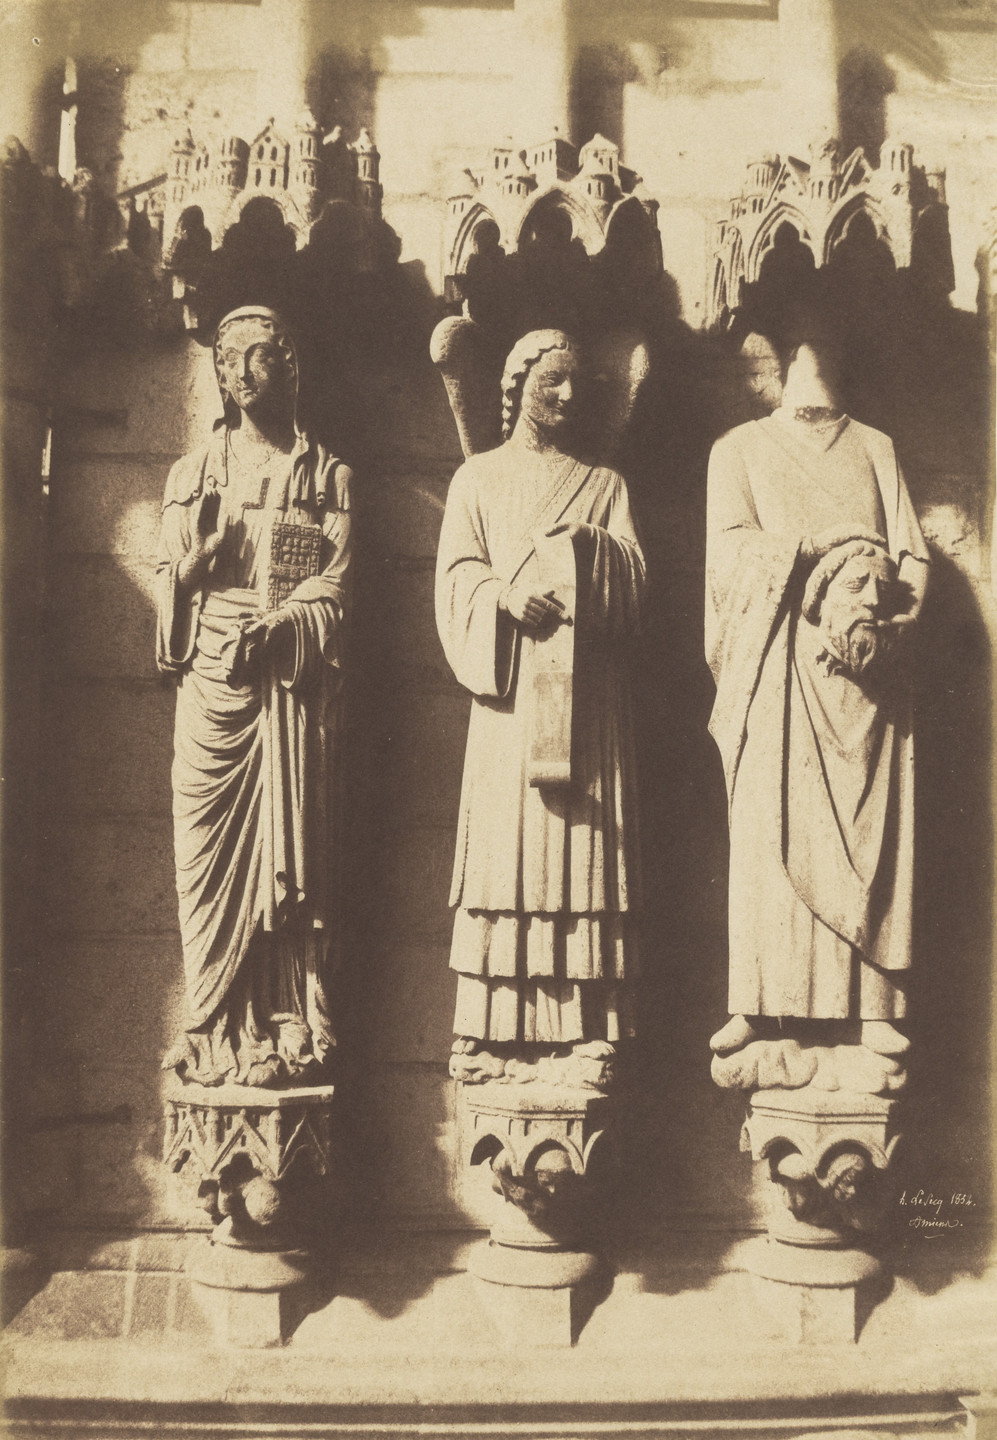 Henri Le Secq. Portal Sculptures, Amiens Cathedral, France. 1852